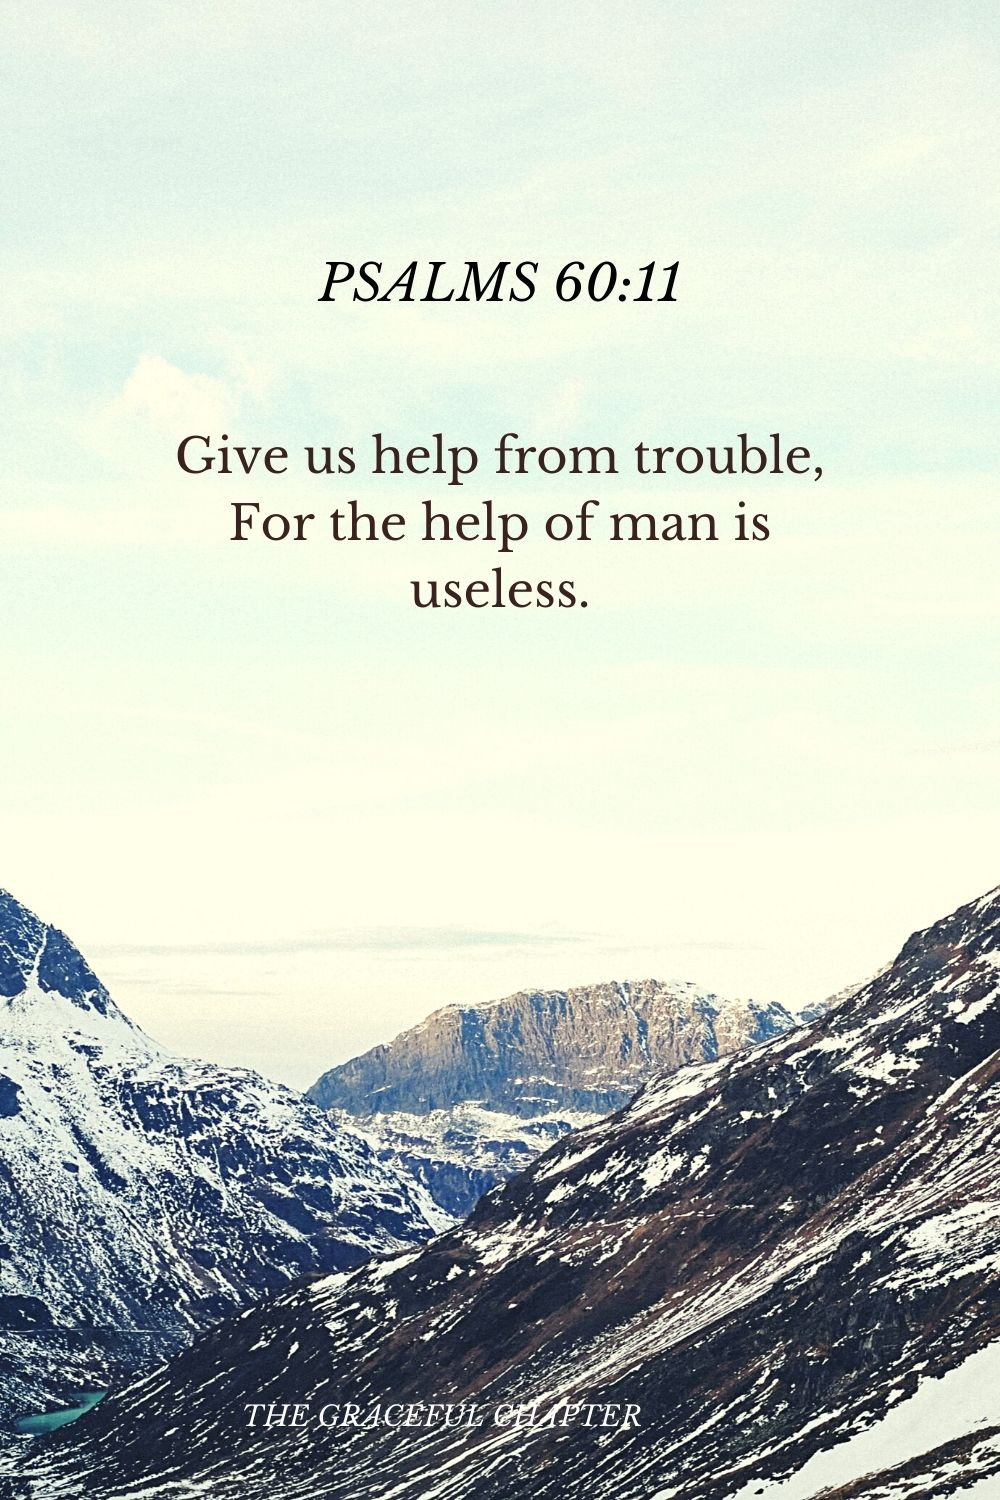 Give us help from trouble, For the help of man is useless. Psalms 60:11